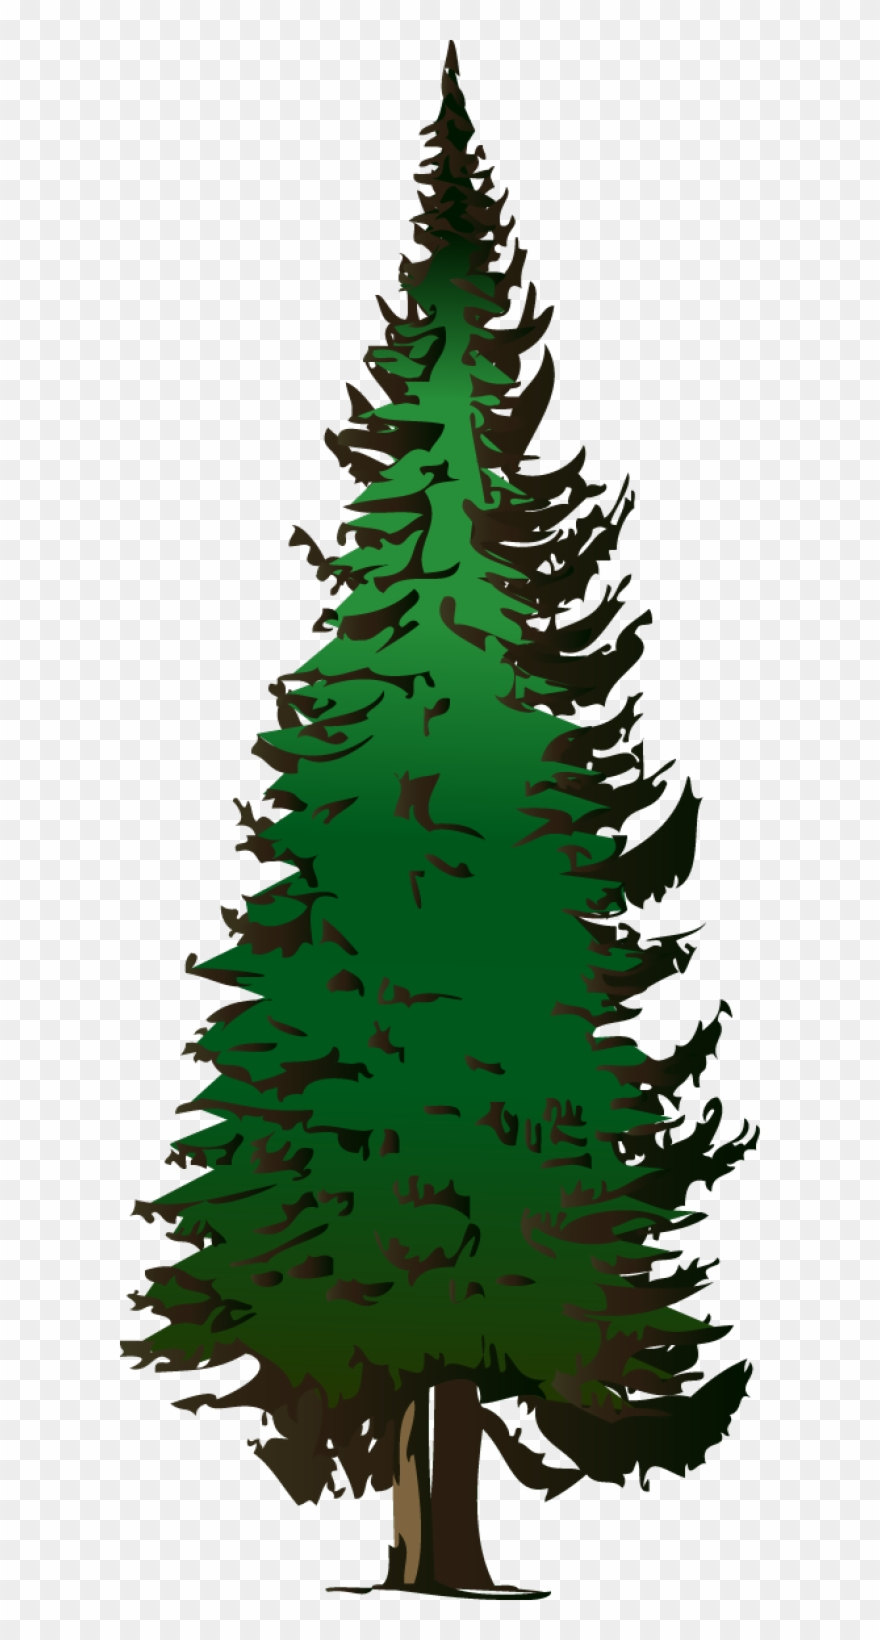 Trees clipart spruce svg transparent stock Pine Tree Vector Free Download - Pine Tree Clipart Png Transparent ... svg transparent stock